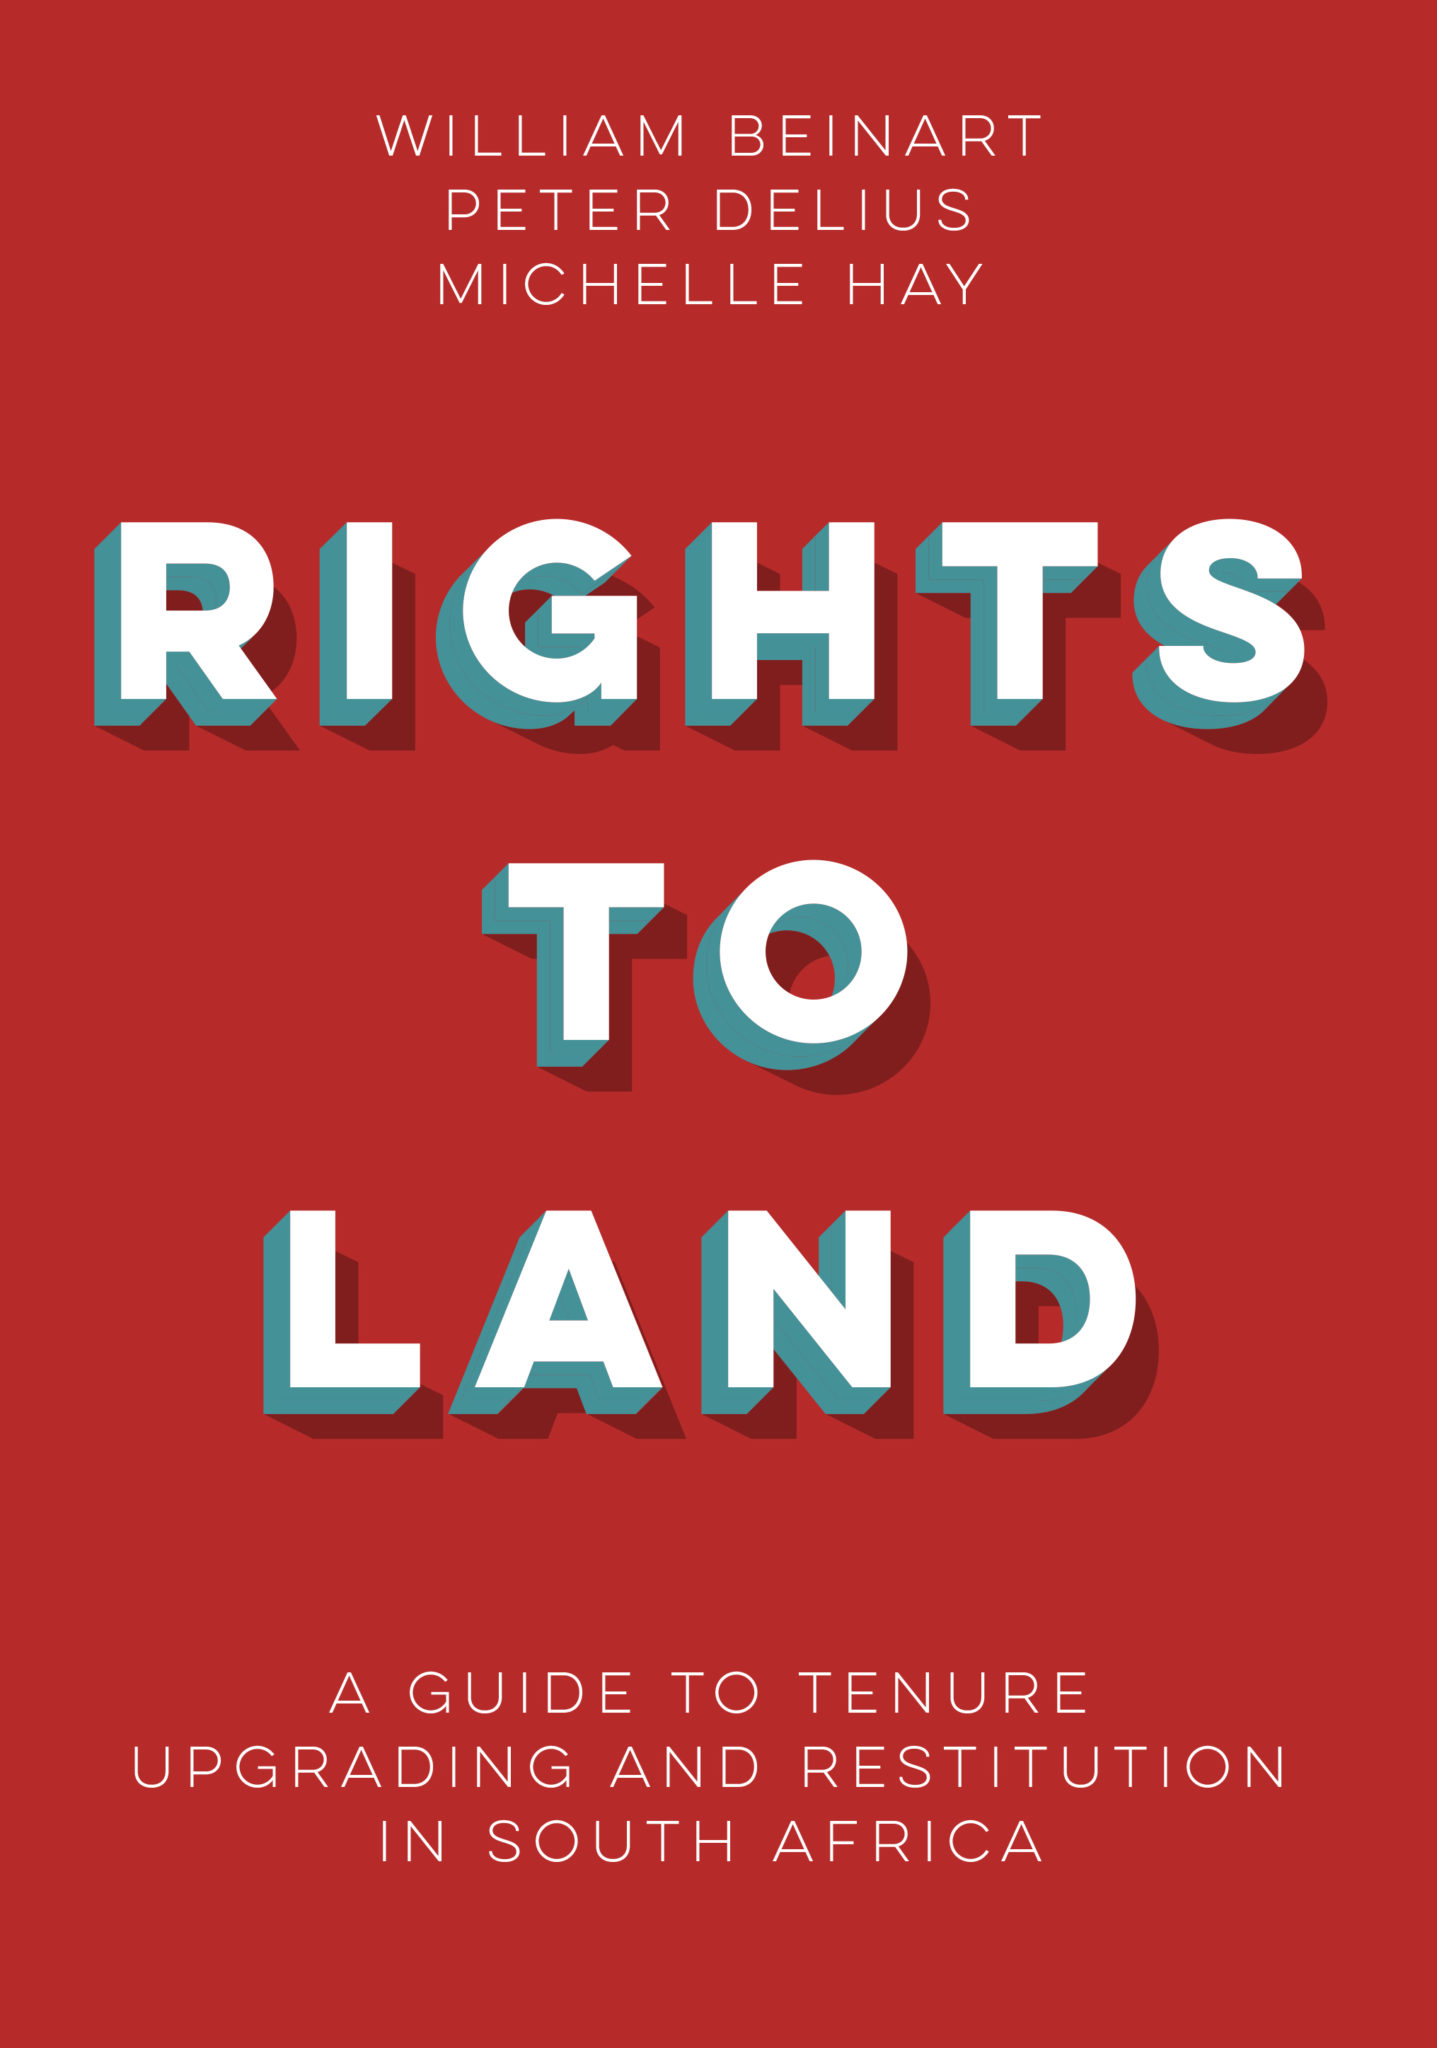 Call for Submissions: The Complexities of Land Tenure and Land Reform in Africa